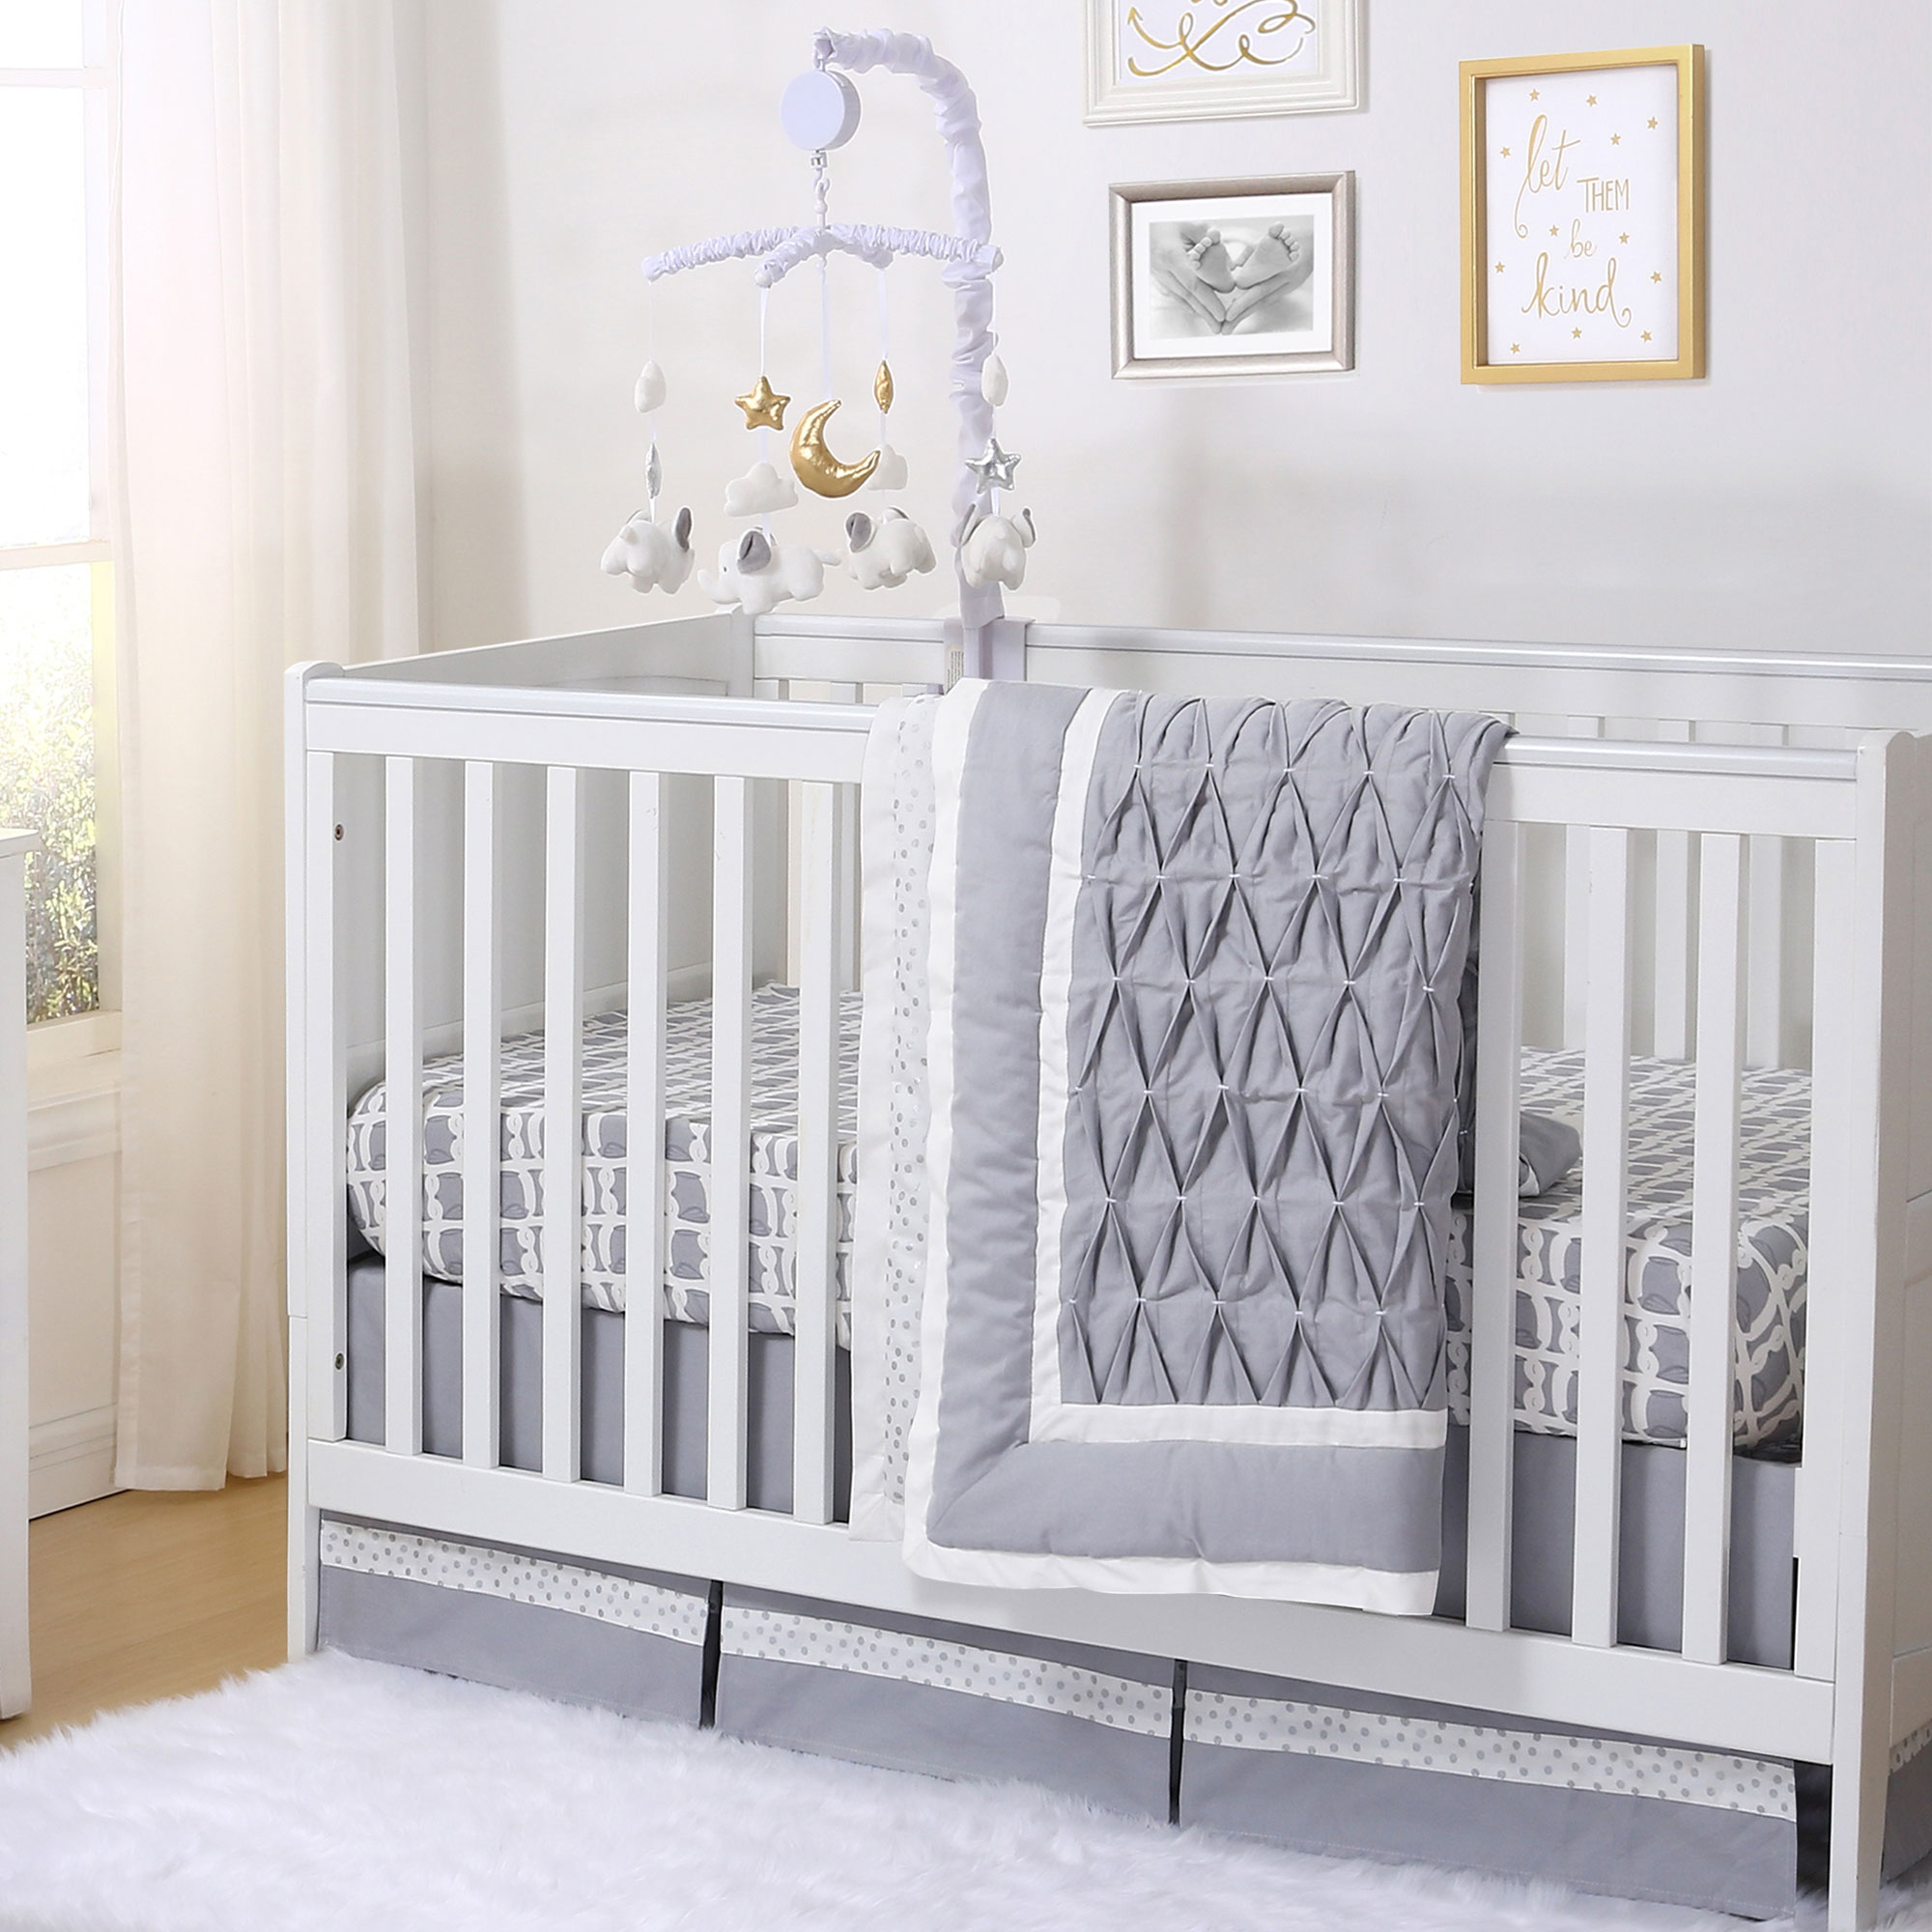 Grey Owl and Silver Dot Pleated 4 Piece Crib Bedding Set by The Peanut Shell